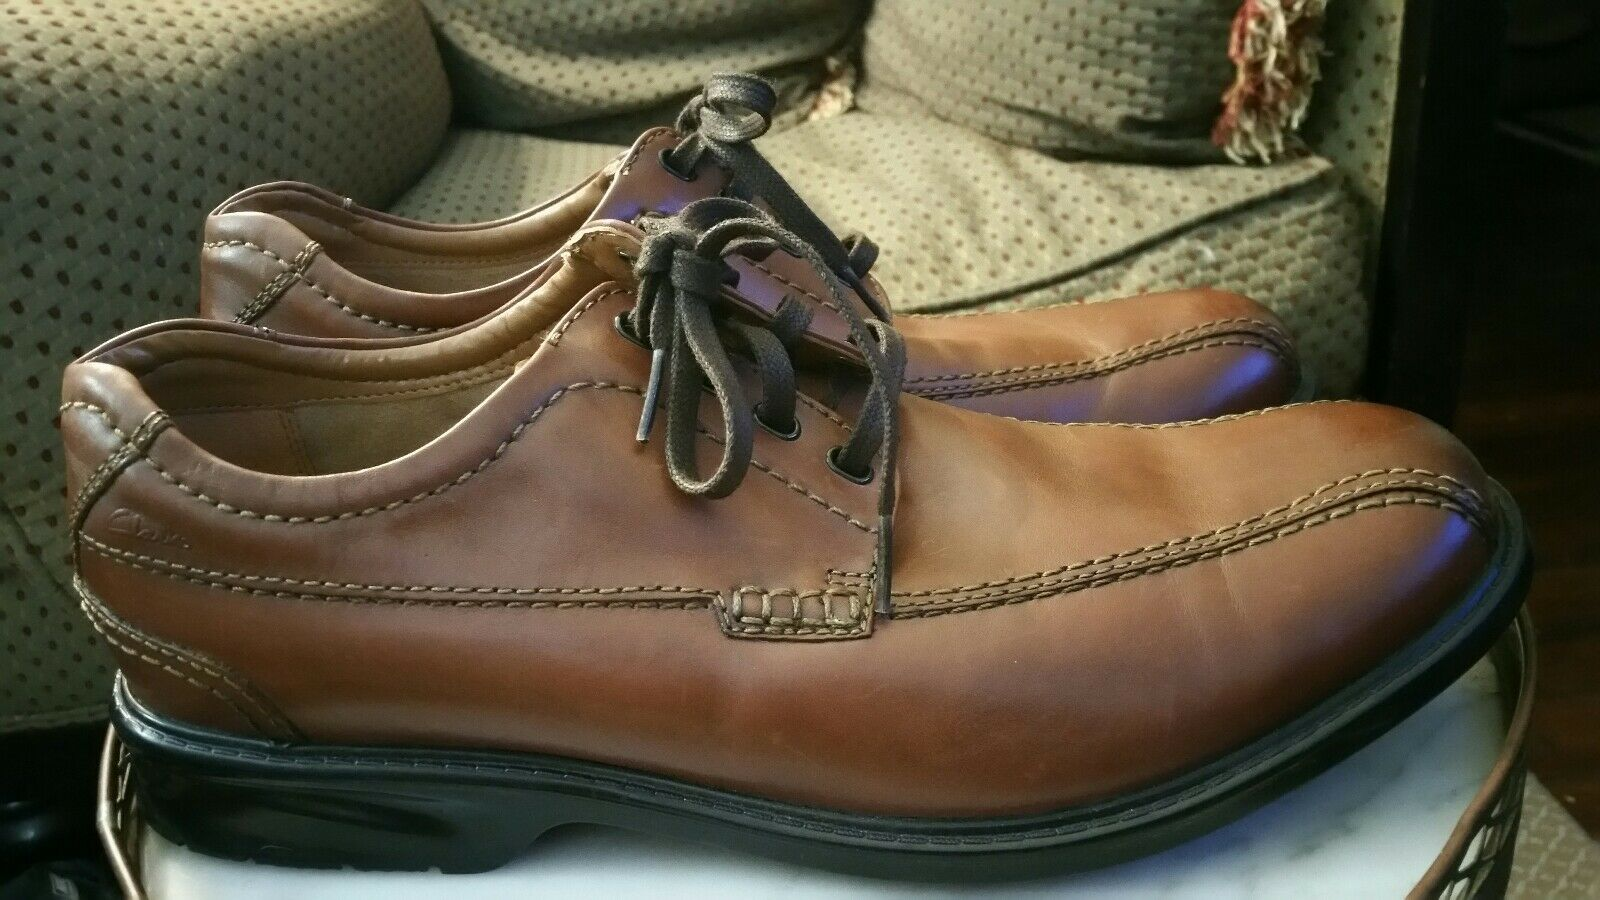 Clarks Brown Lace Up shoes sz 11.5 Dress Or Casual Worn Once